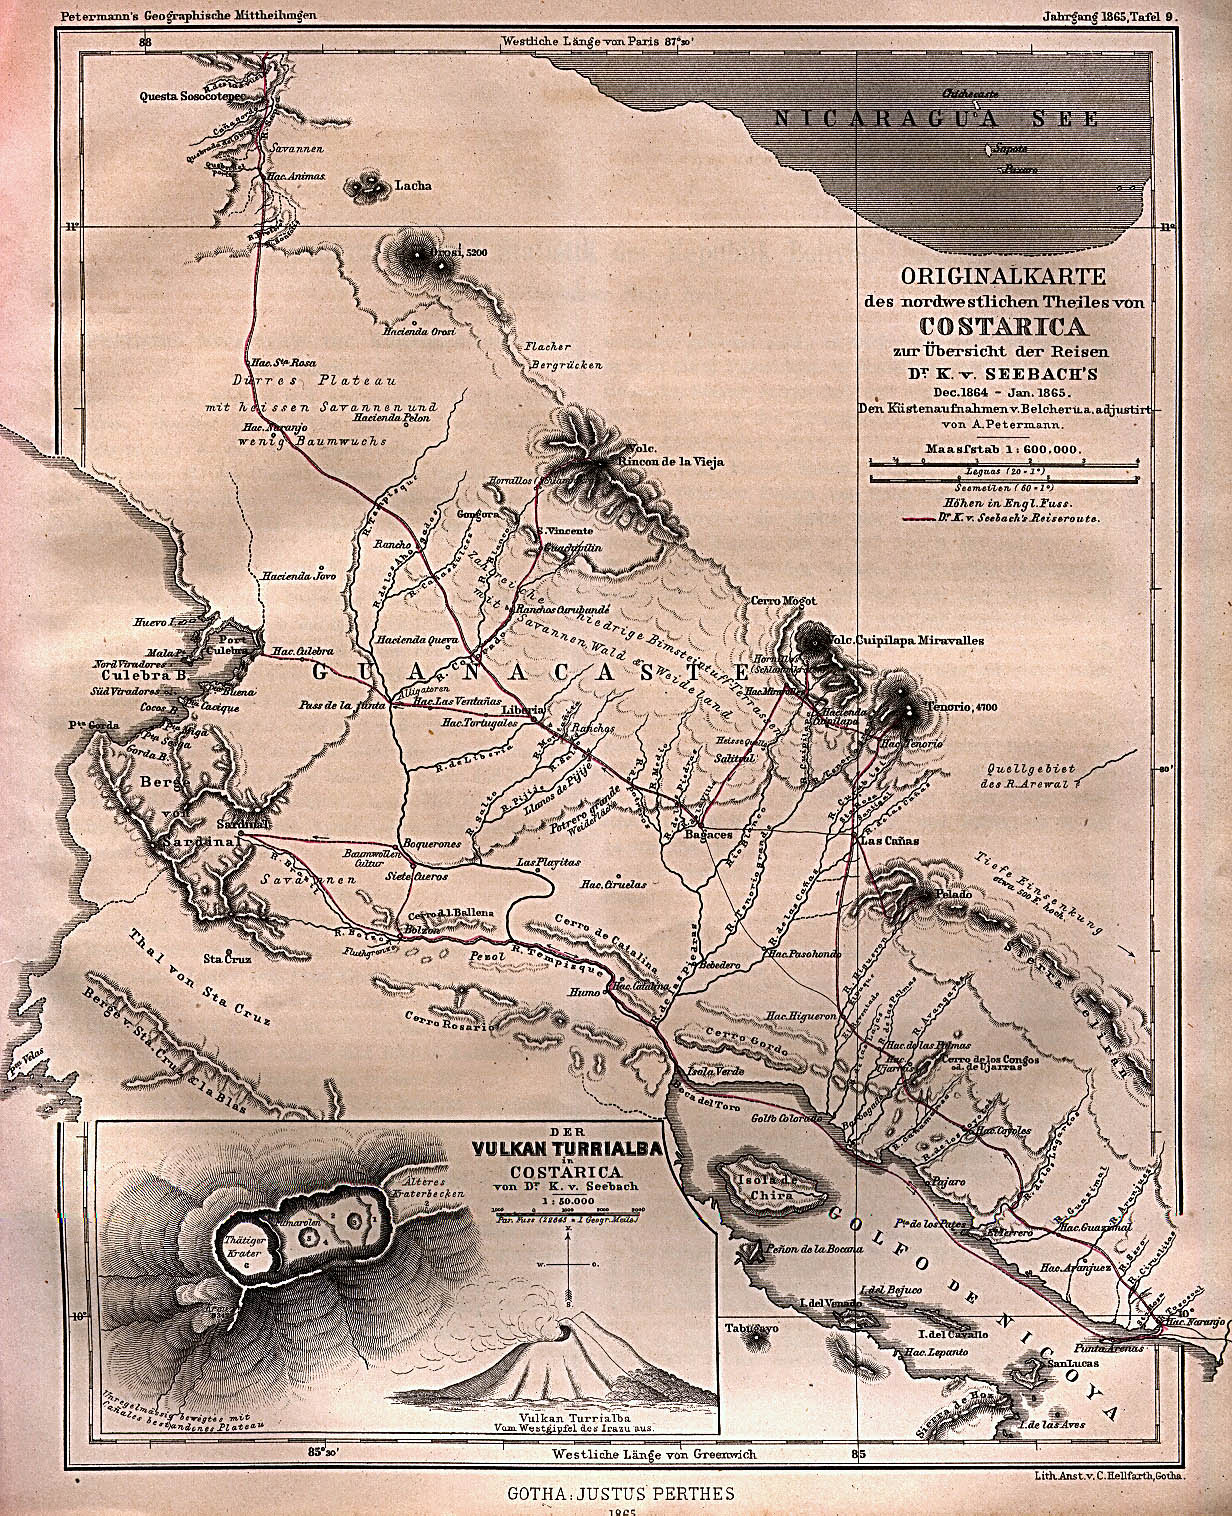 Mapa del Norte-Occidente de Costa Rica 1865